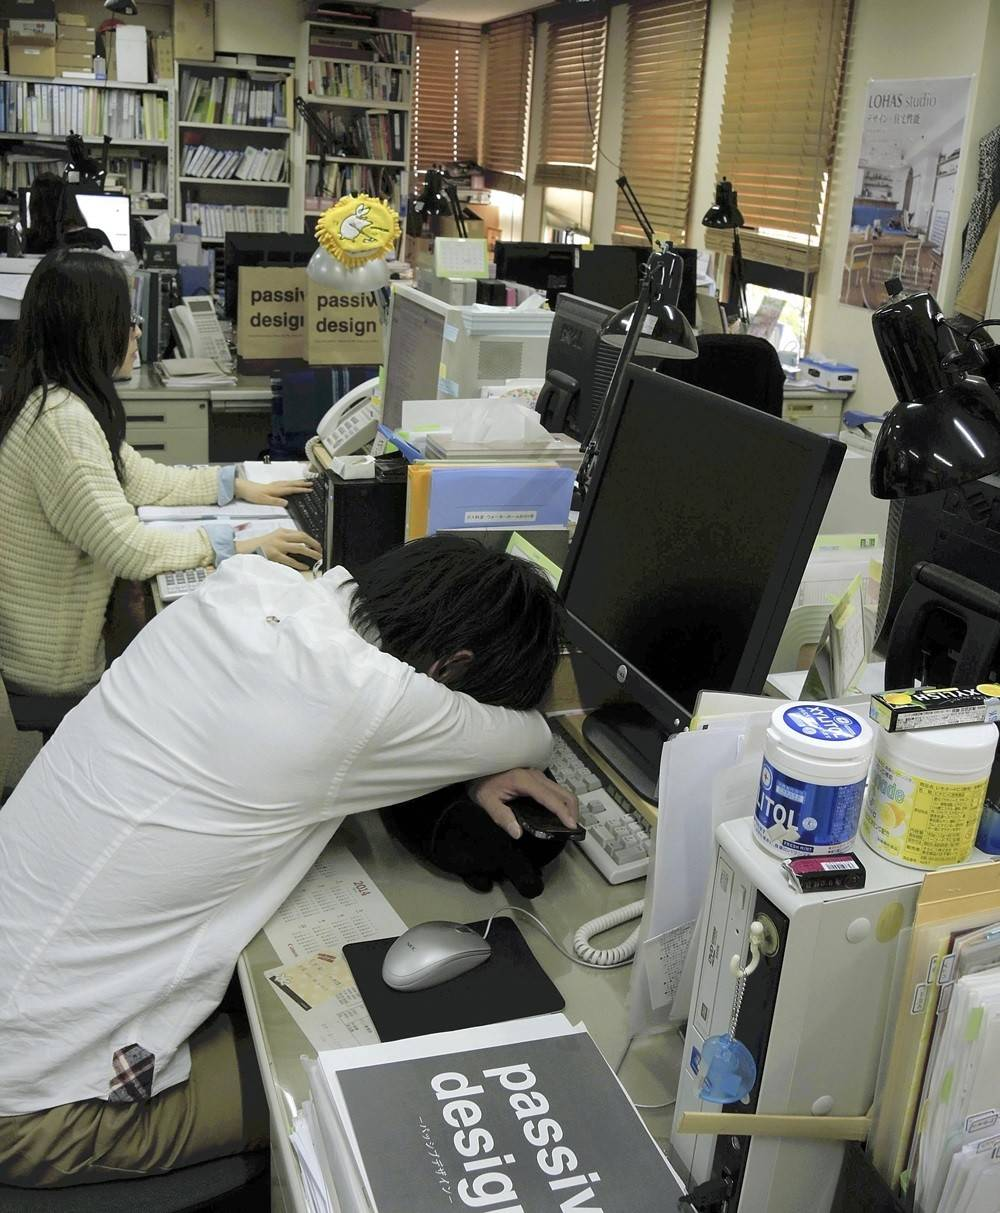 An employee of Okuta Corp. in Saitama takes a nap at his desk during work hours using the company's power-nap system.